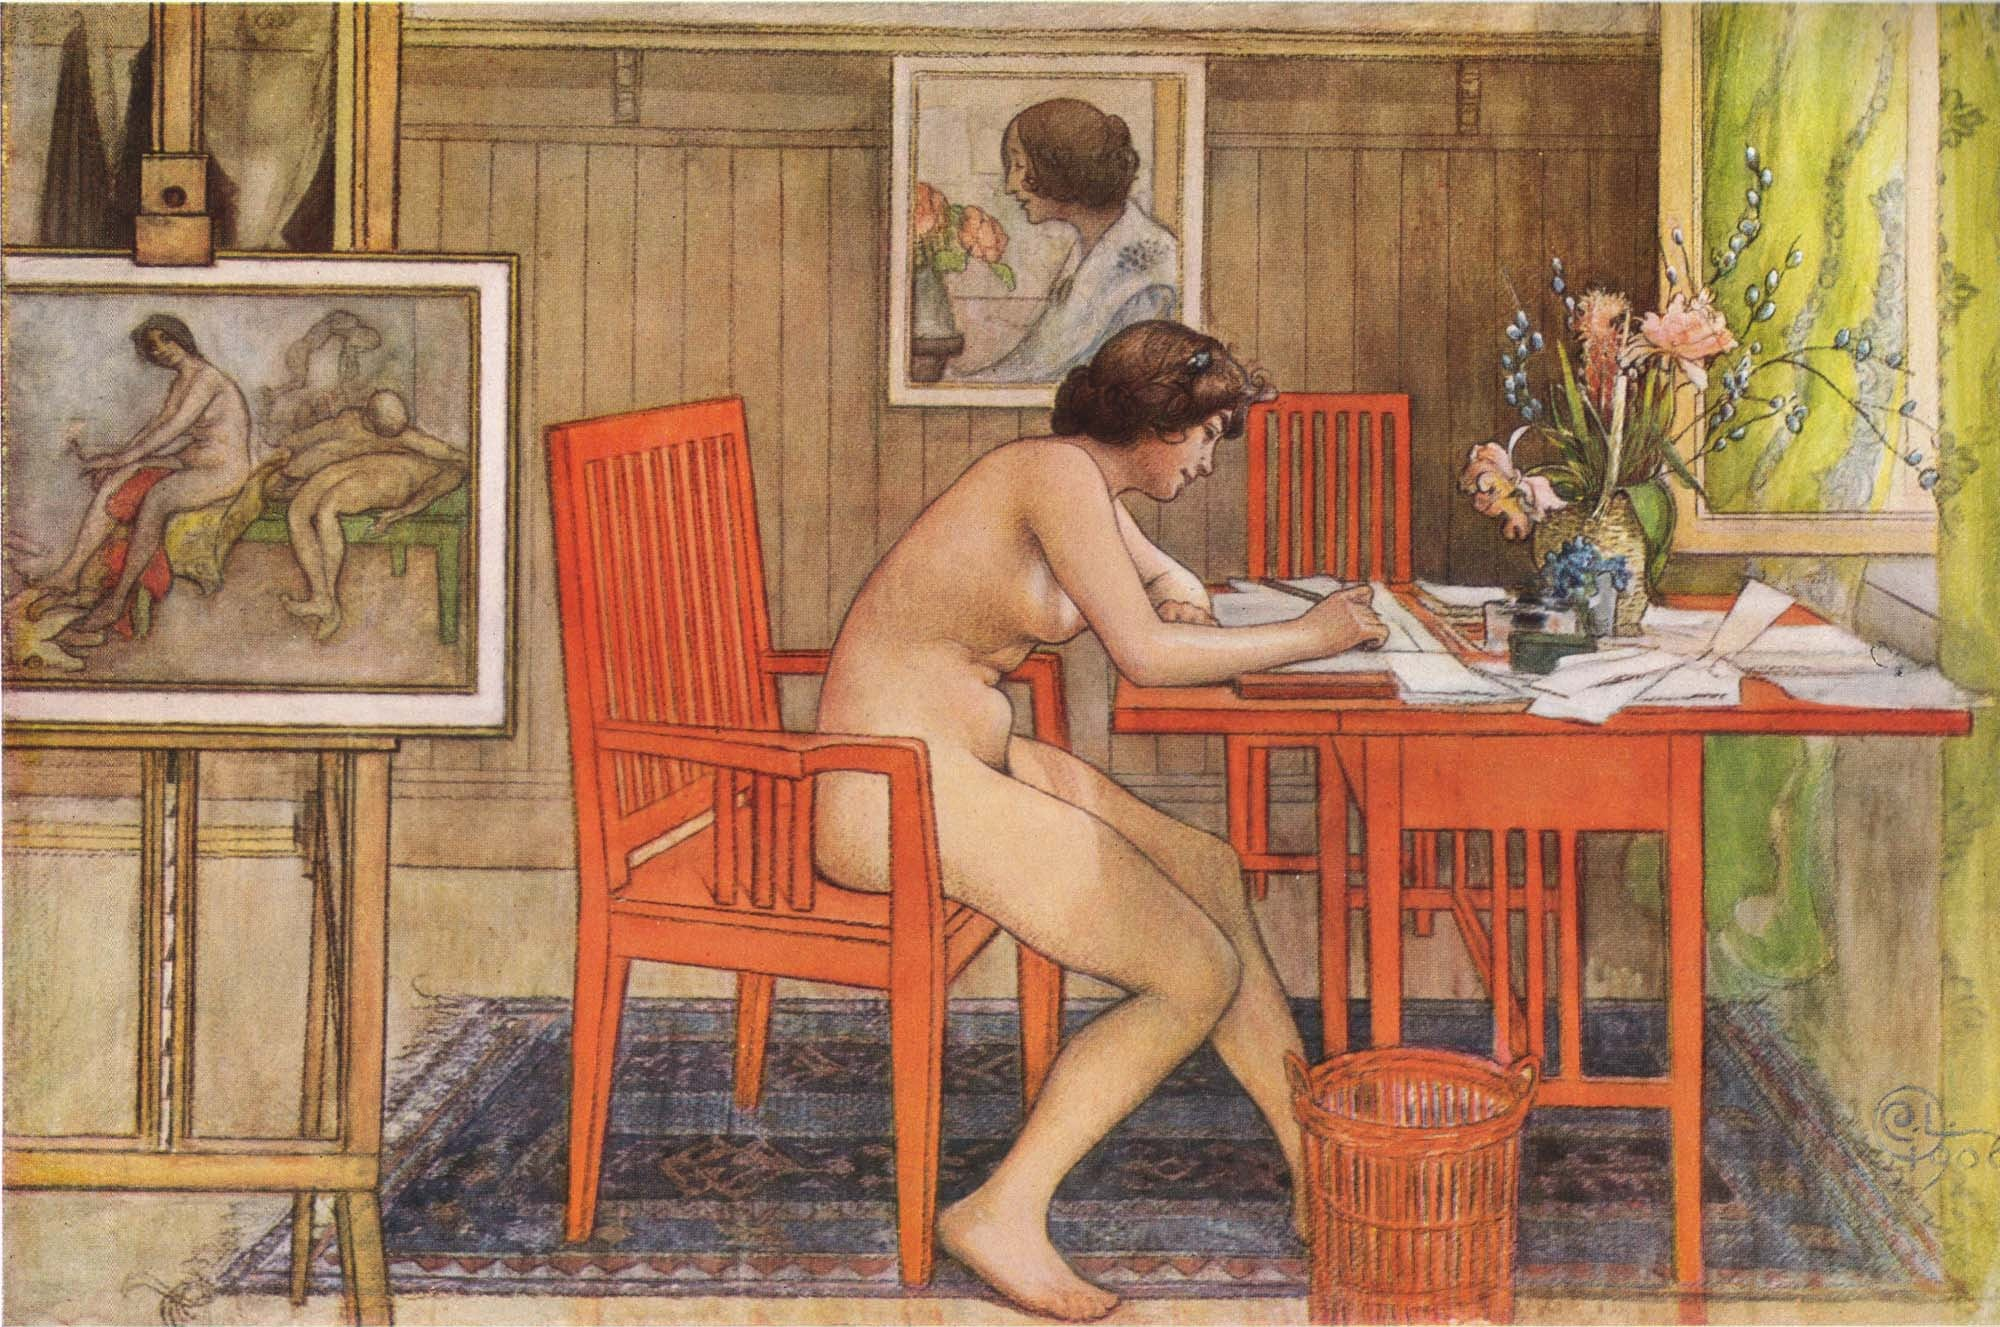 Carl Larsson | Buy Posters, Frames, Canvas, Digital Art & Large Size Prints Of The Famous Modern Master's Artworks